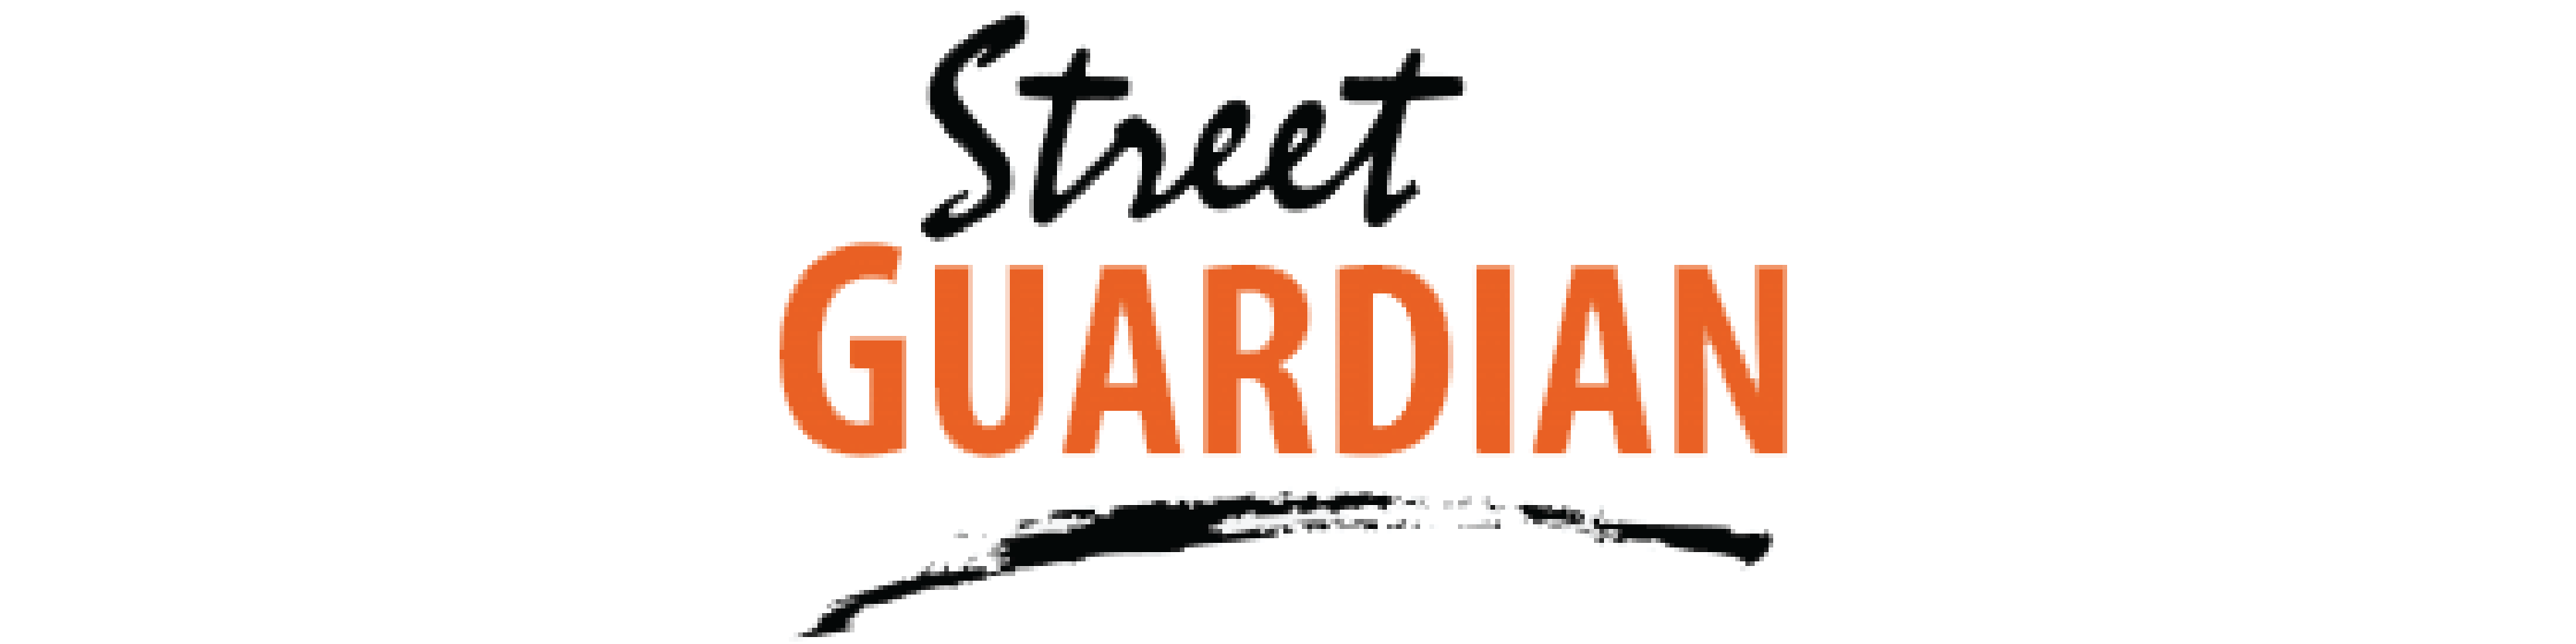 Street Guardian Reviews